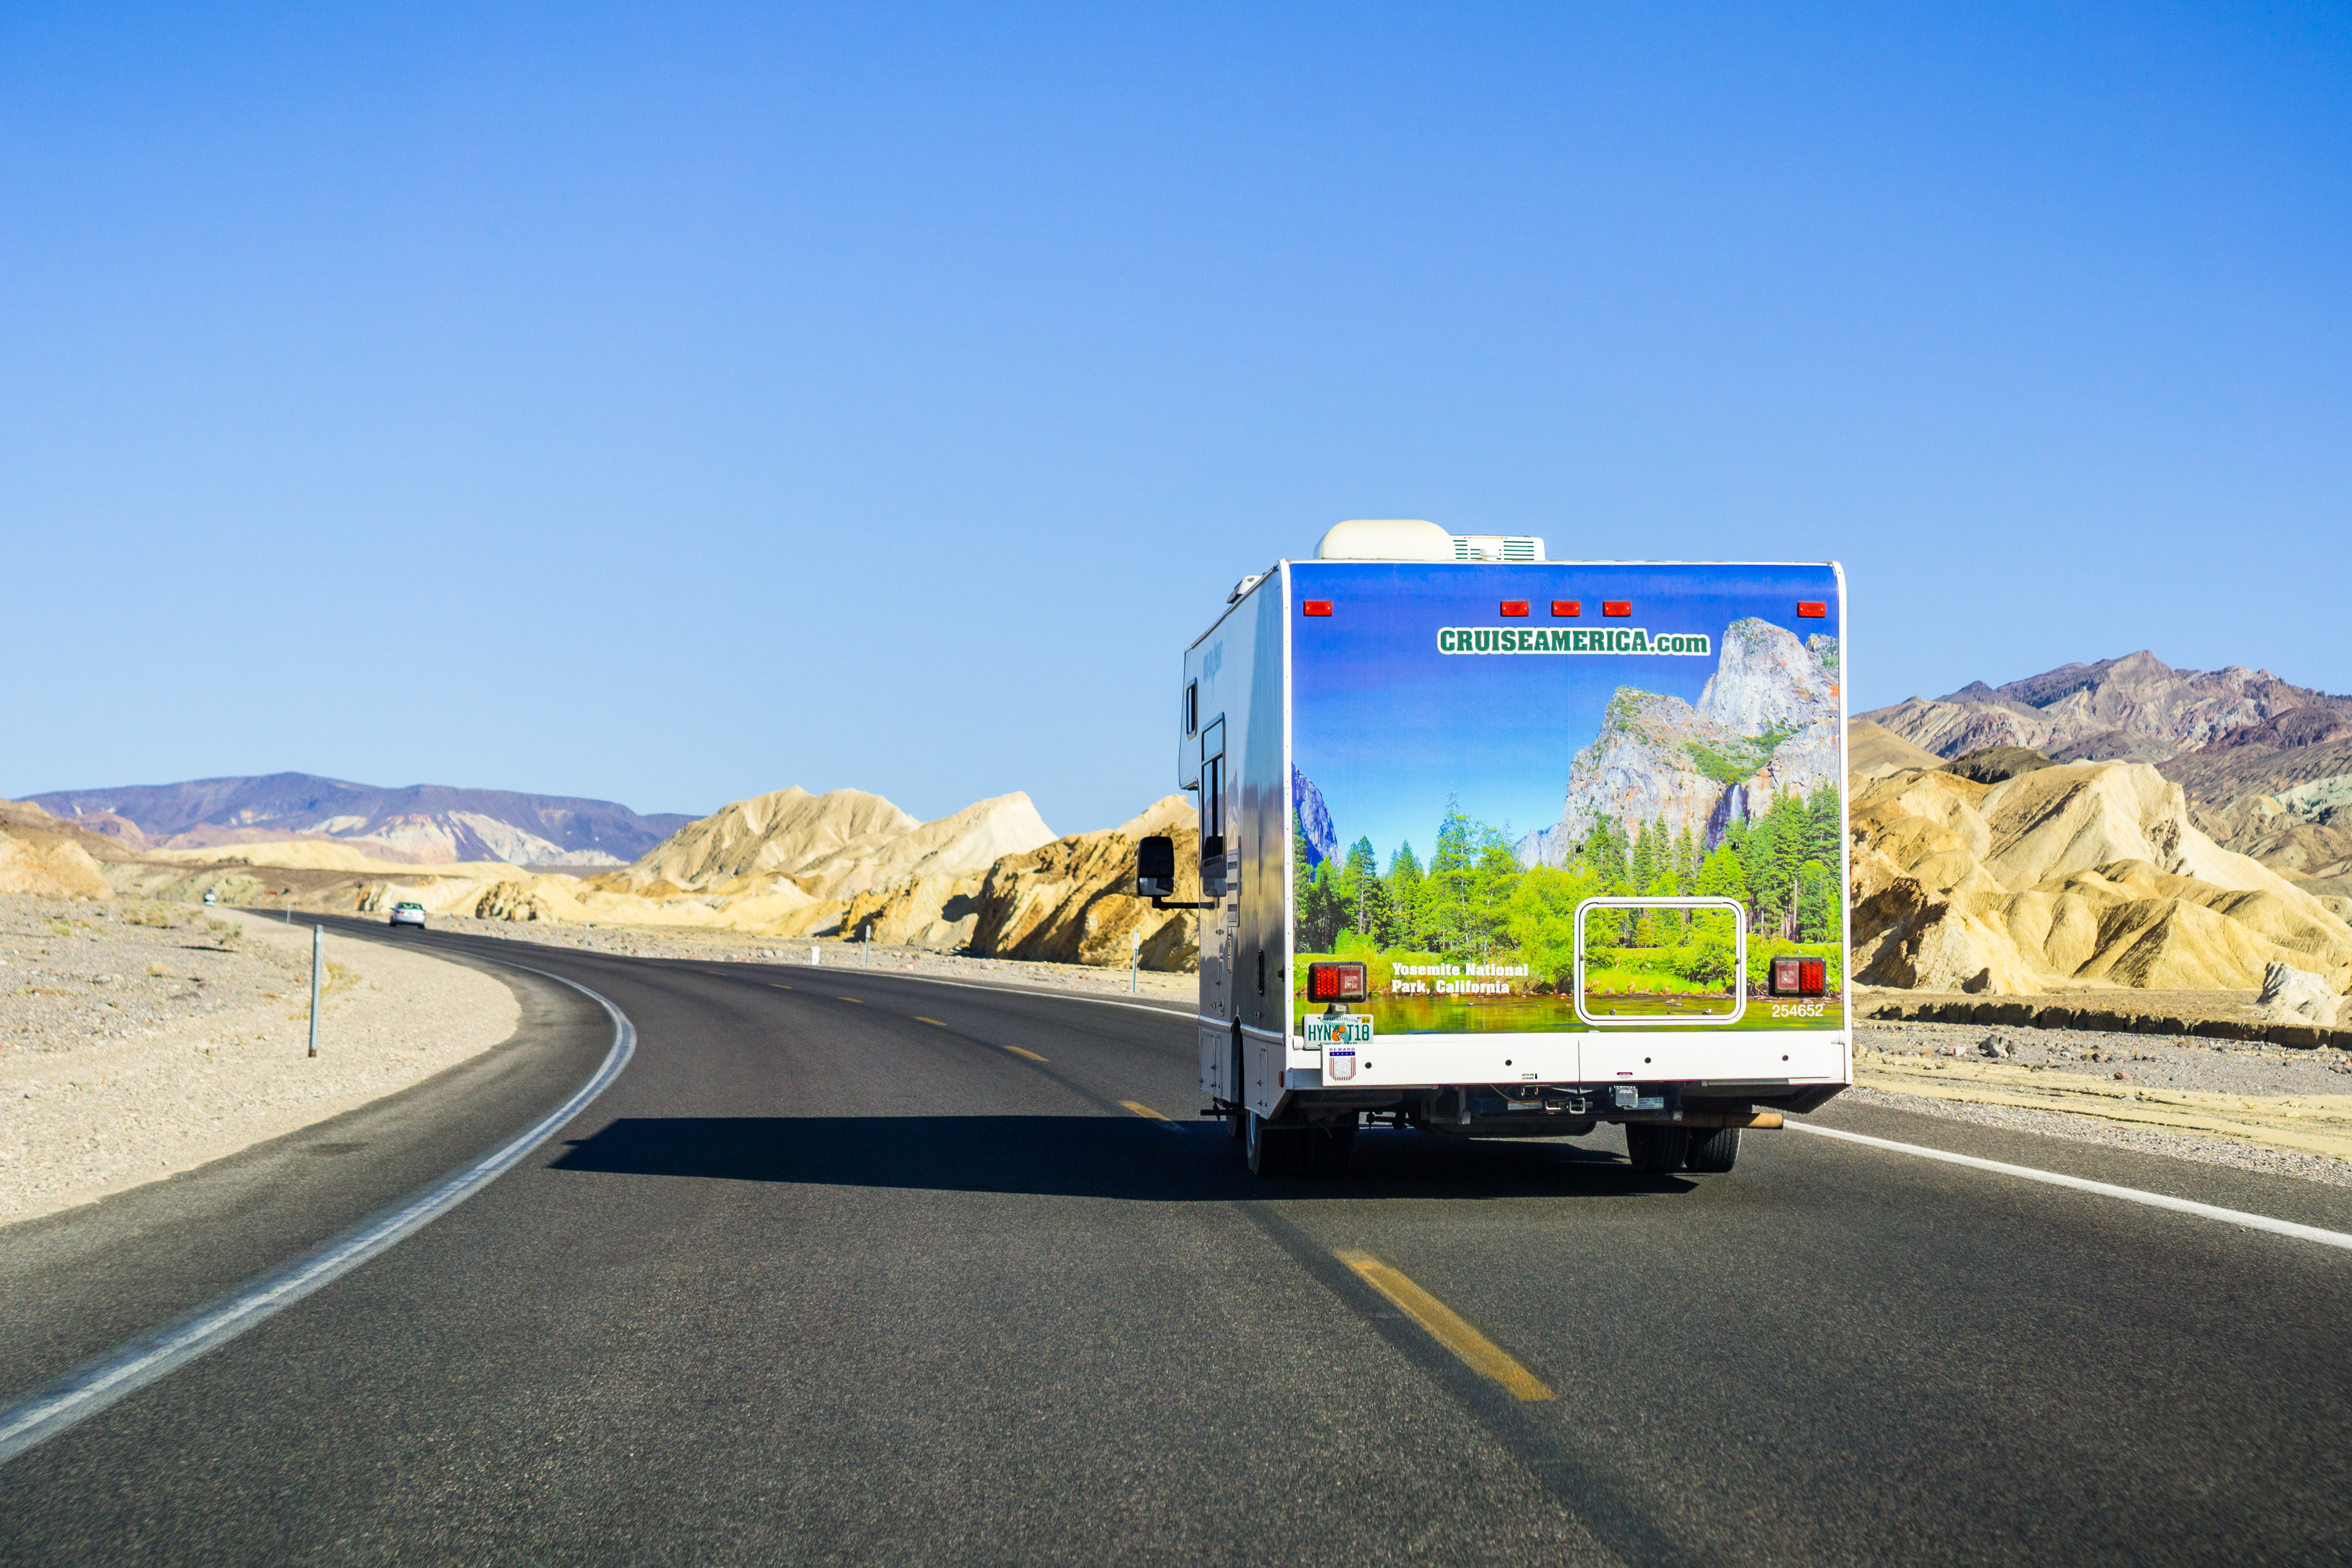 Cruise America RV camper traveling through Death Valley National Park